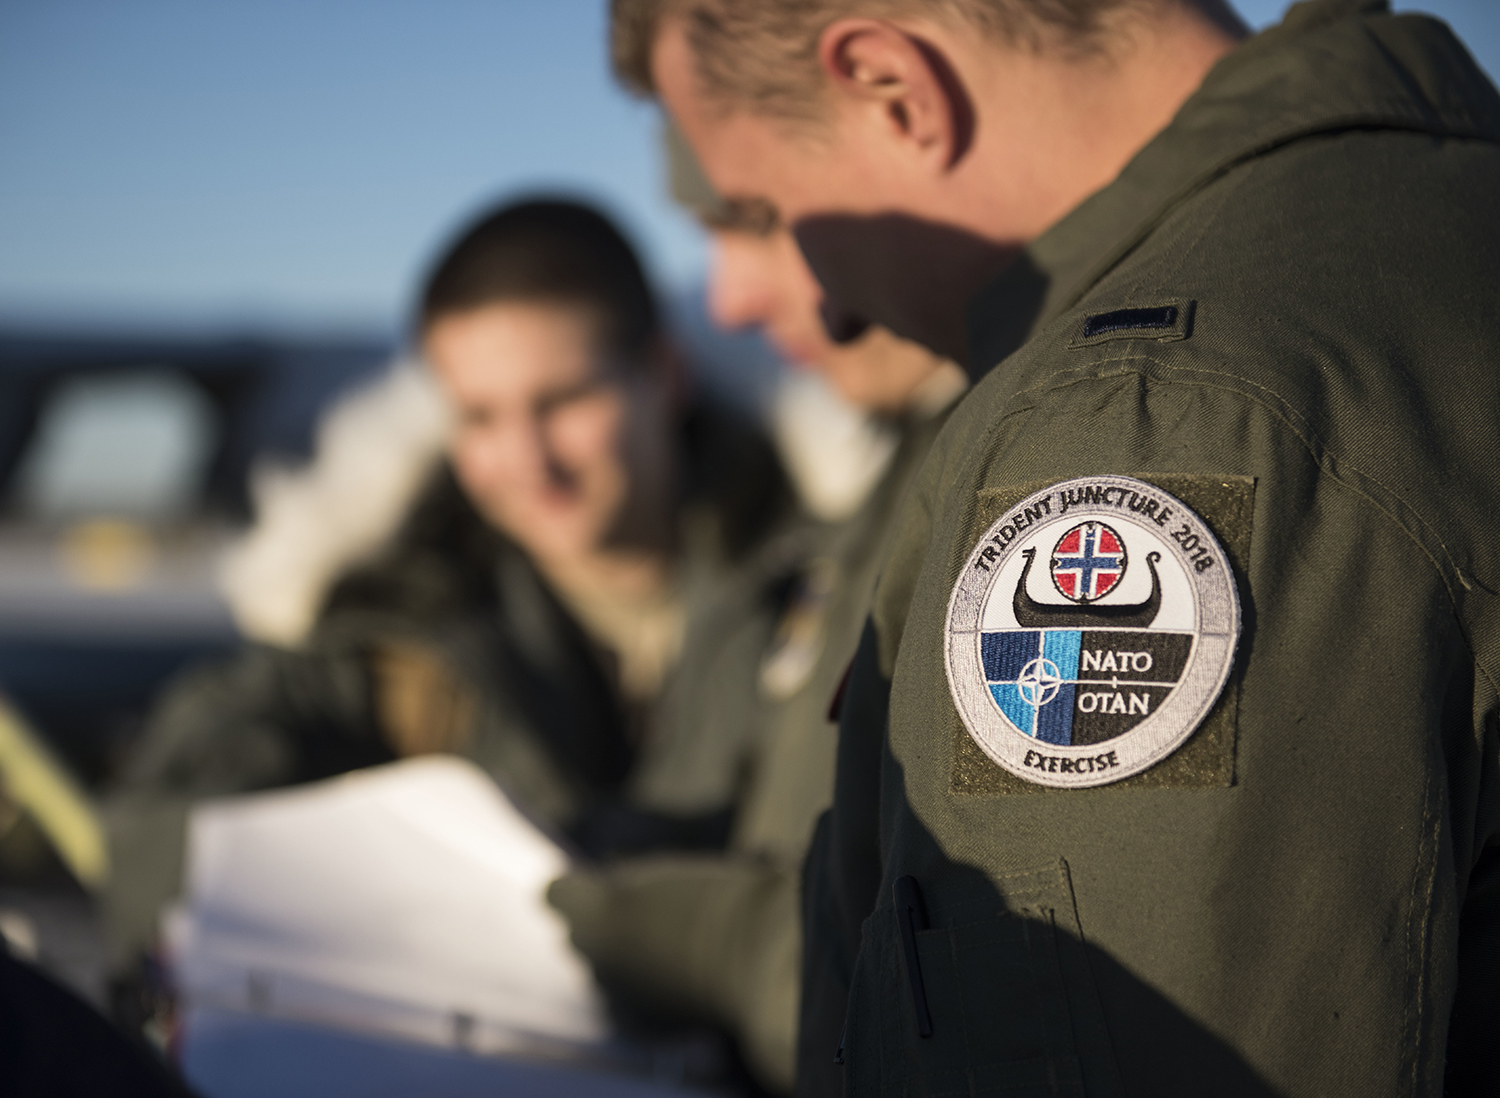 U.S. Air Force KC-135 Stratotanker aircrew conduct a preflight brief before takeoff during Exercise Trident Juncture 18 from Rovaniemi, Finland, Oct. 29, 2018. Exercise Trident Juncture is the largest NATO exercise since 2002, including 31 countries and more than 50,000 military members. (Senior Airman Luke Milano/Air Force)